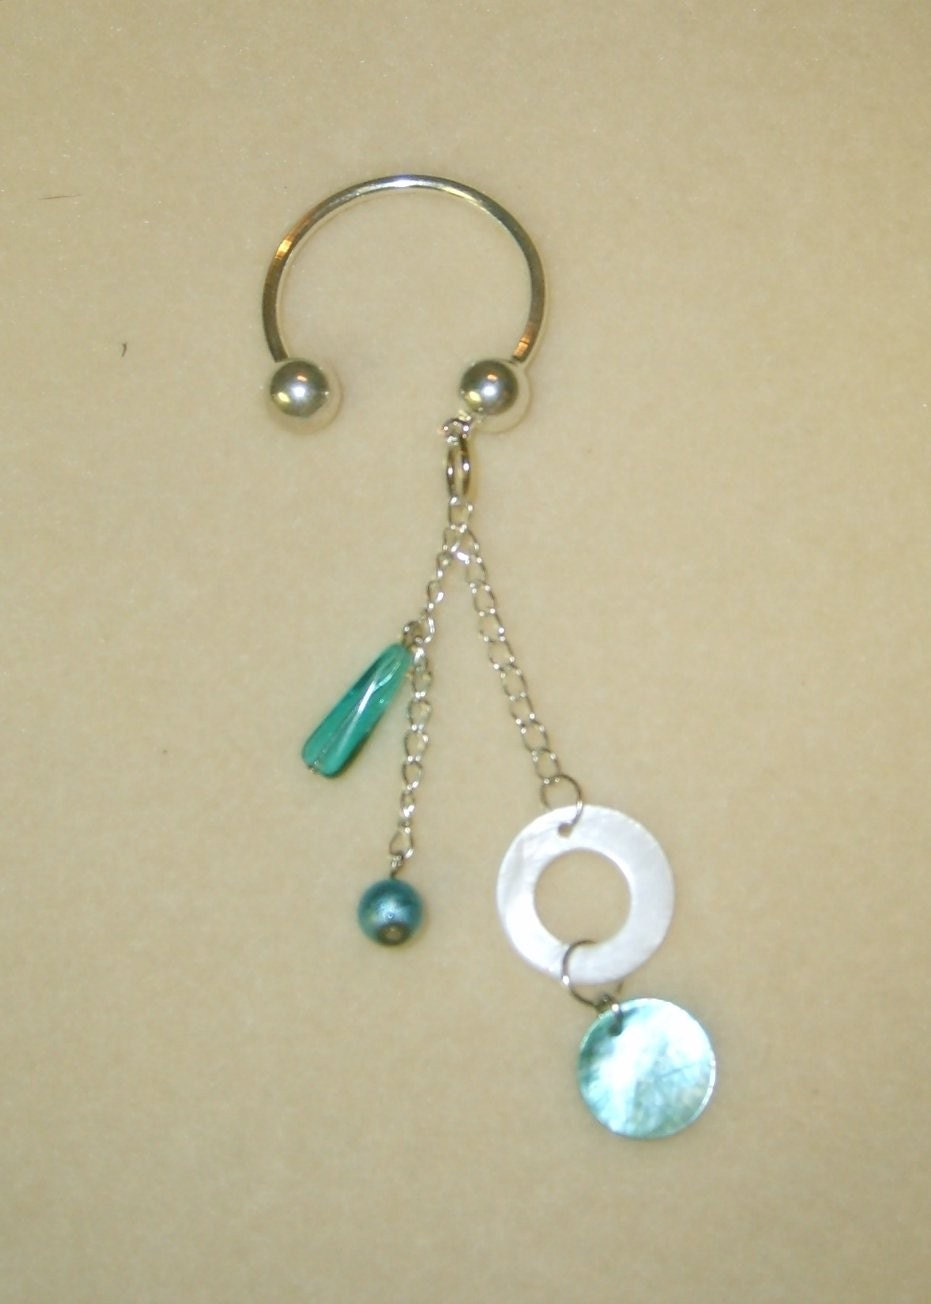 5 7 9 Jewelry, Blue and Silver Keychain, available at Etsy